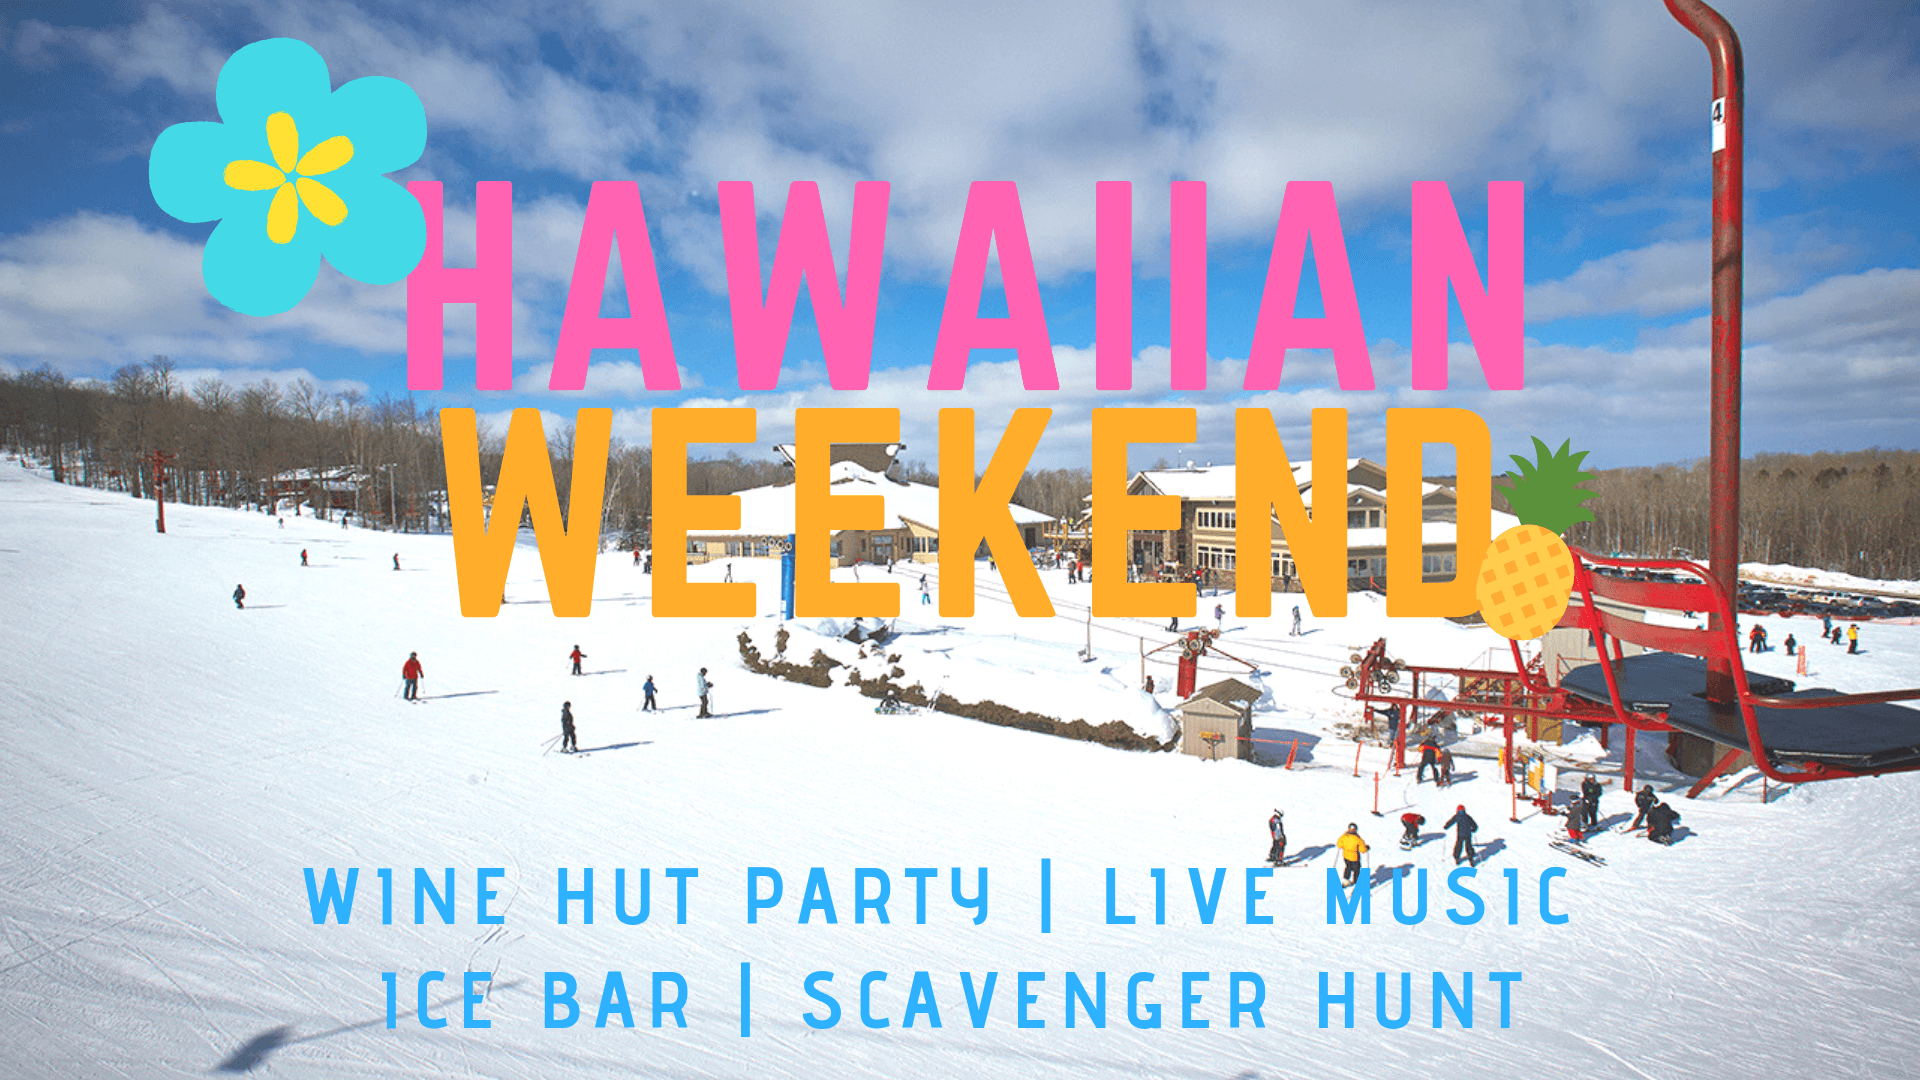 hawaiian weekend - big powderhorn mountain resort